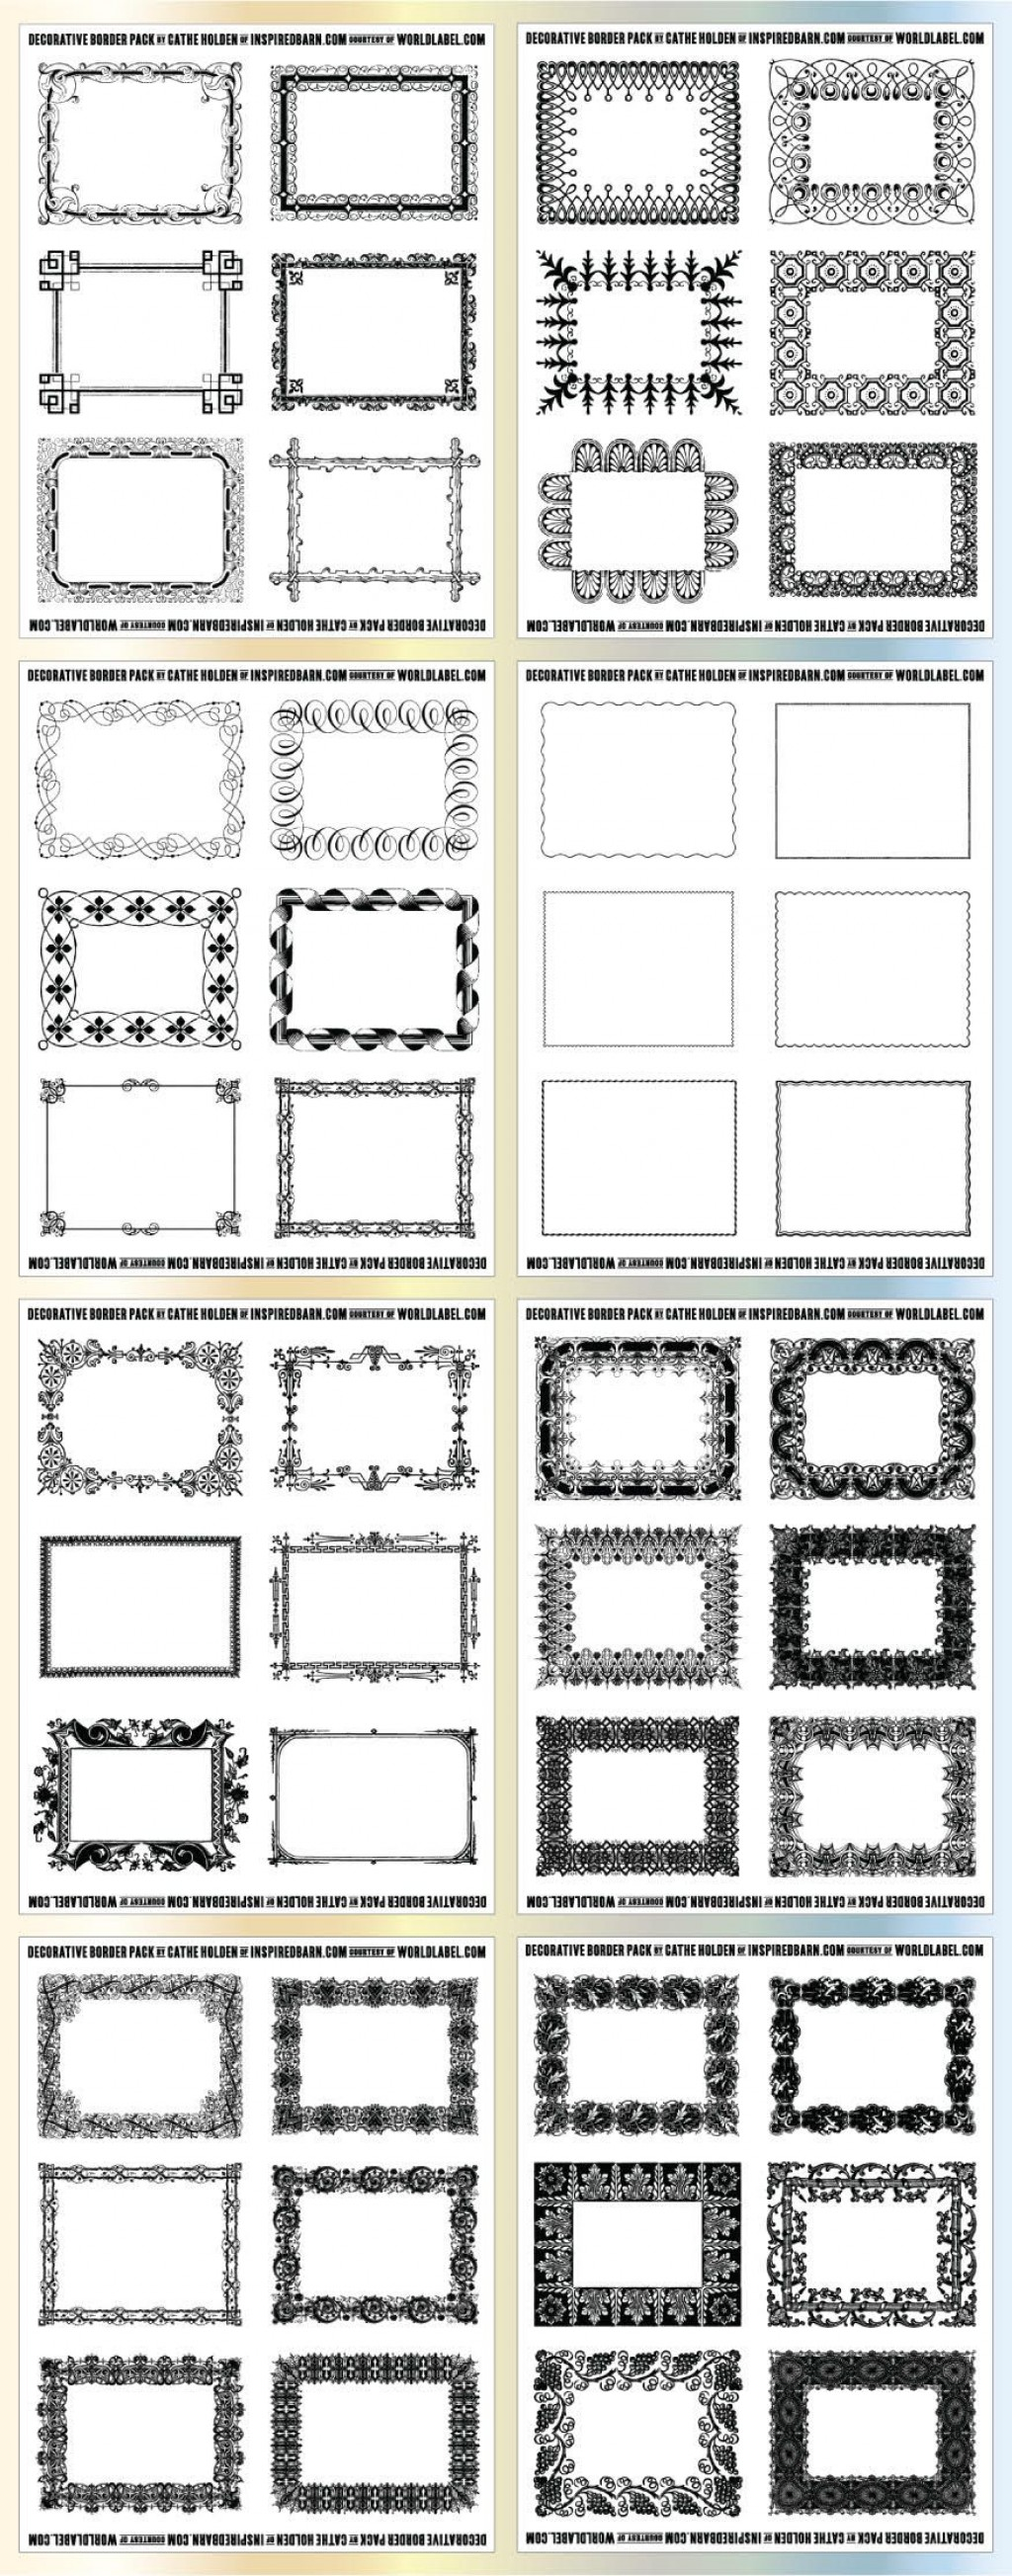 010 Staggering Addres Label Template Free High Resolution  Cute Shipping Return WordLarge